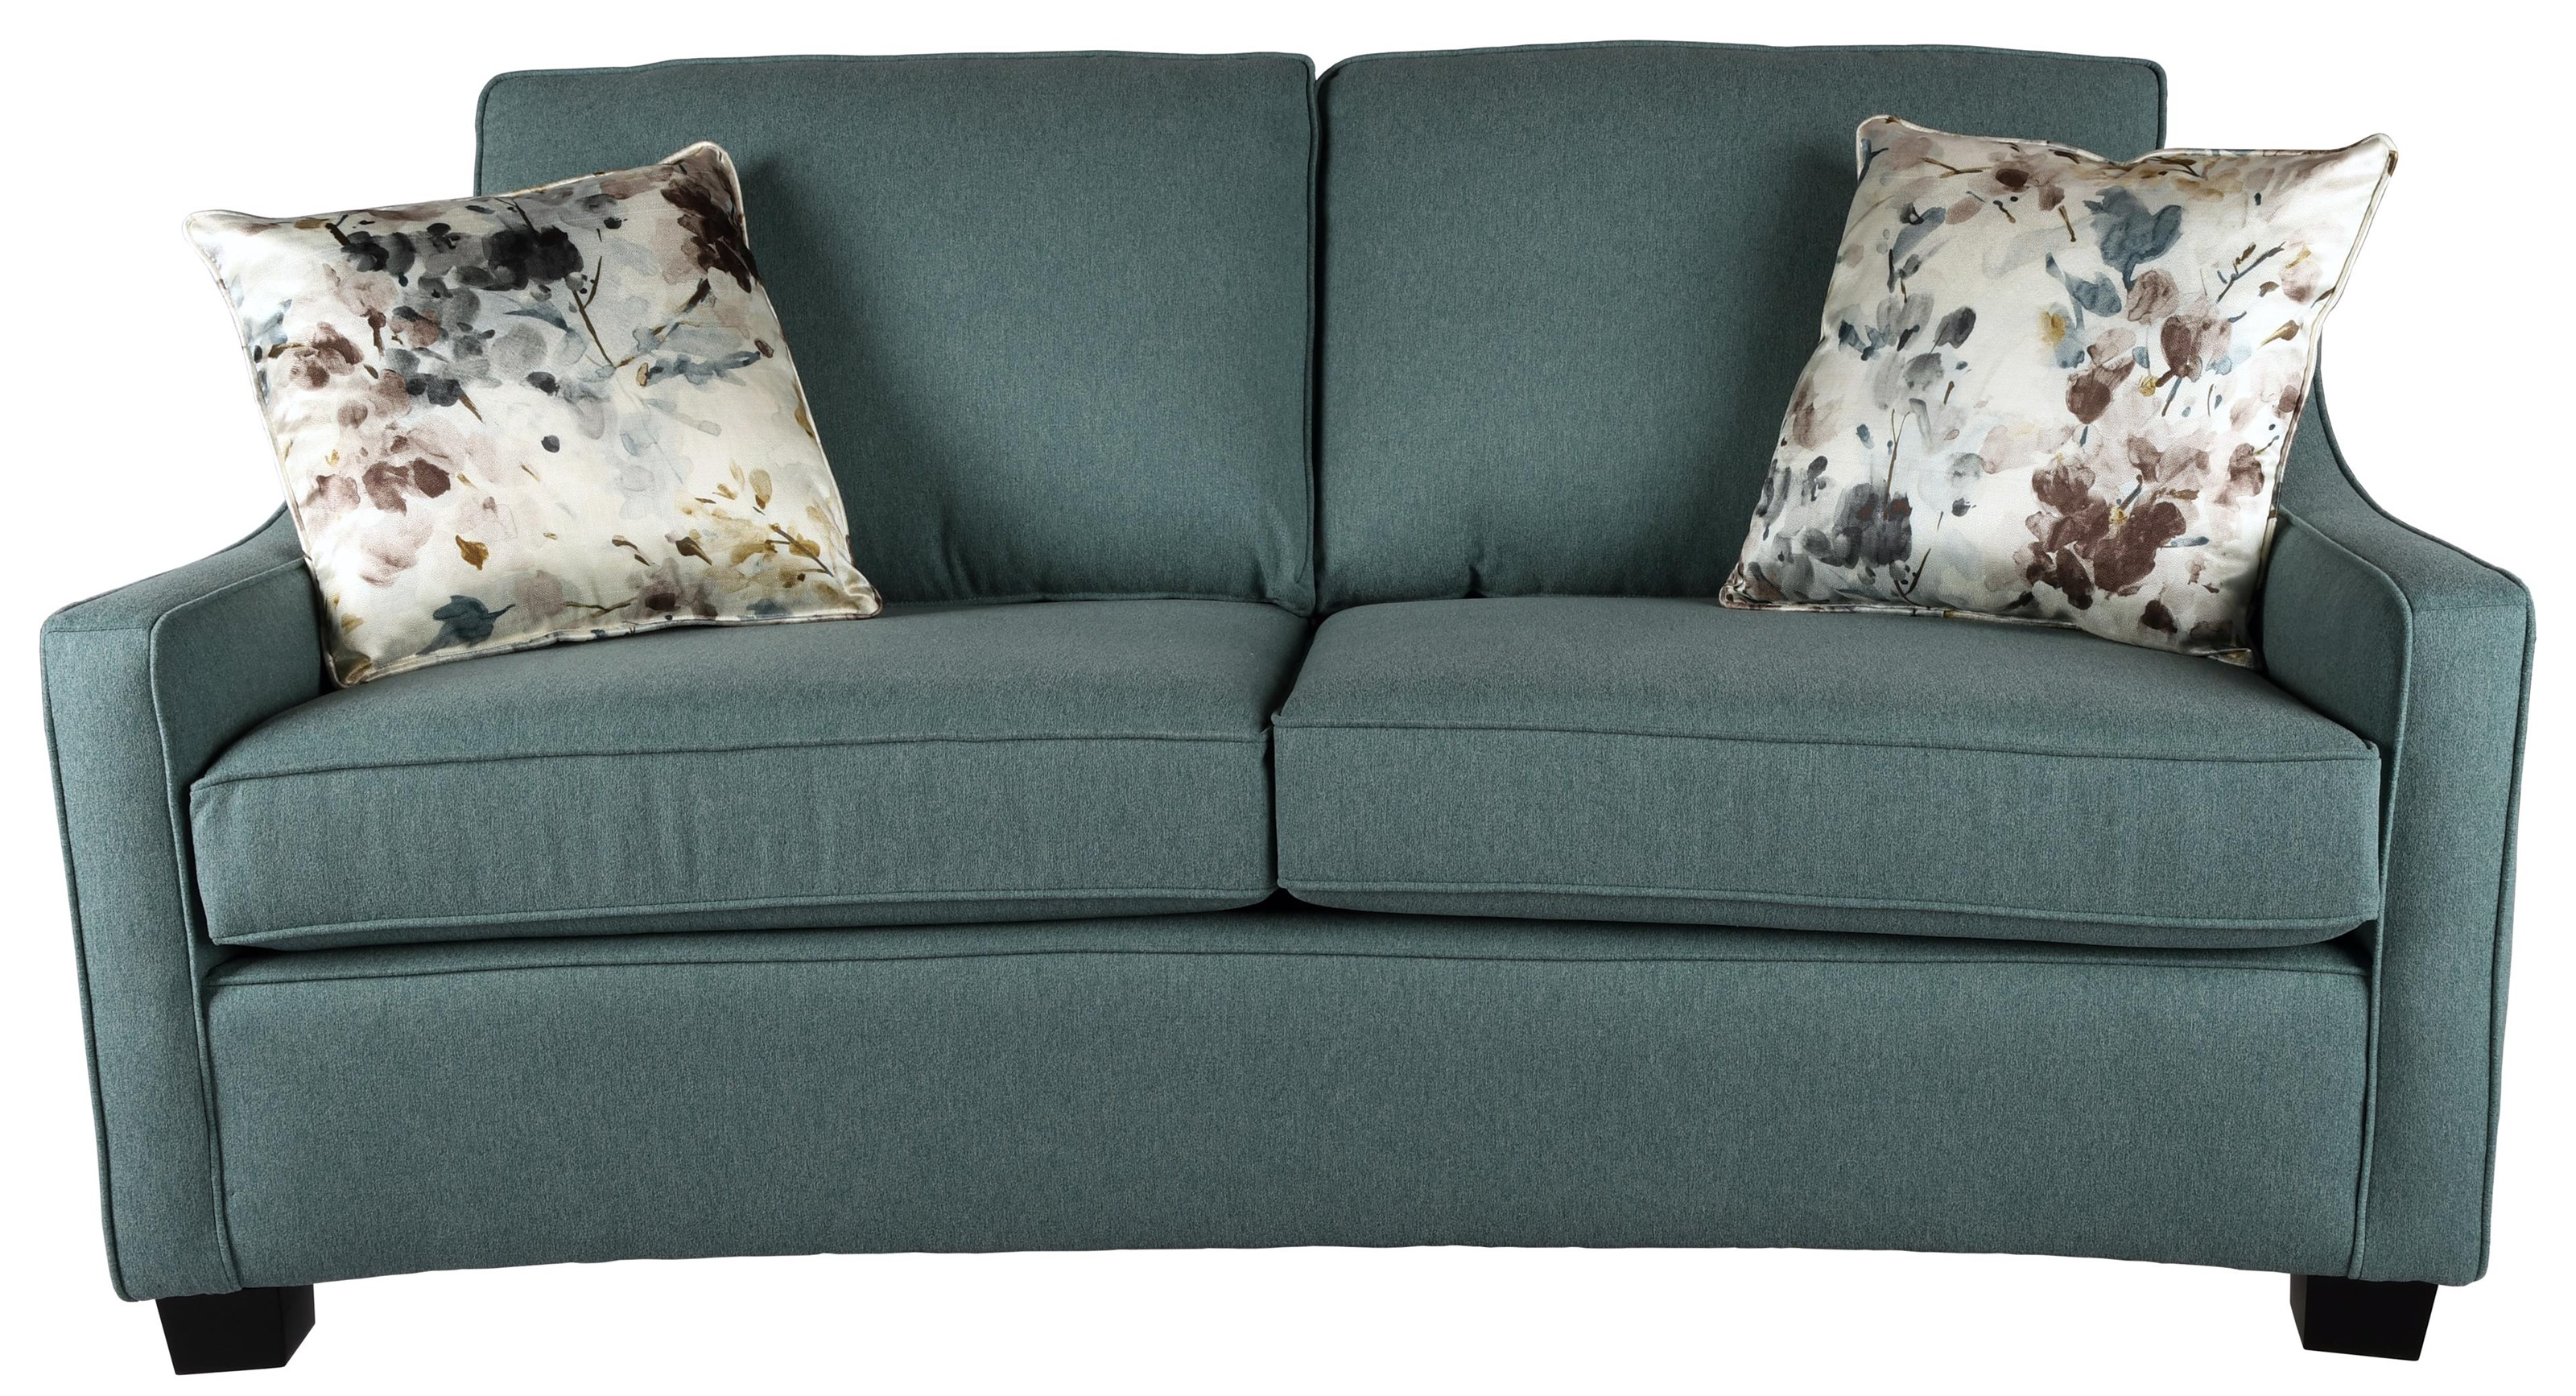 Paris Condo Sofa by Southside Designs at Bennett's Furniture and Mattresses